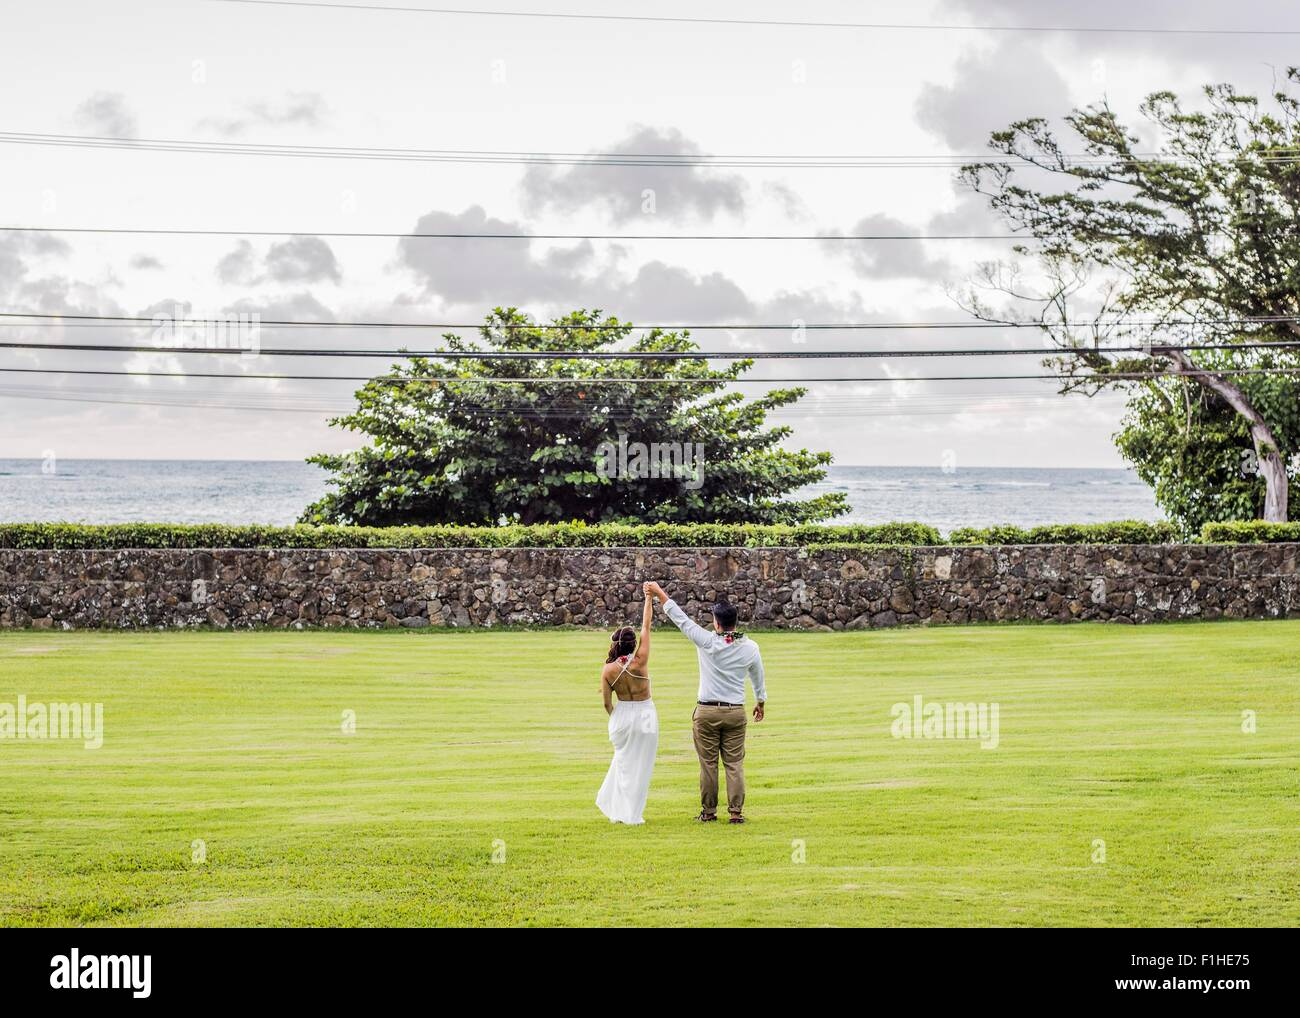 Rear view of bride and bridegroom holding raised hands in garden at Hawaiian wedding, Kaaawa, Oahu, Hawaii, USA - Stock Image